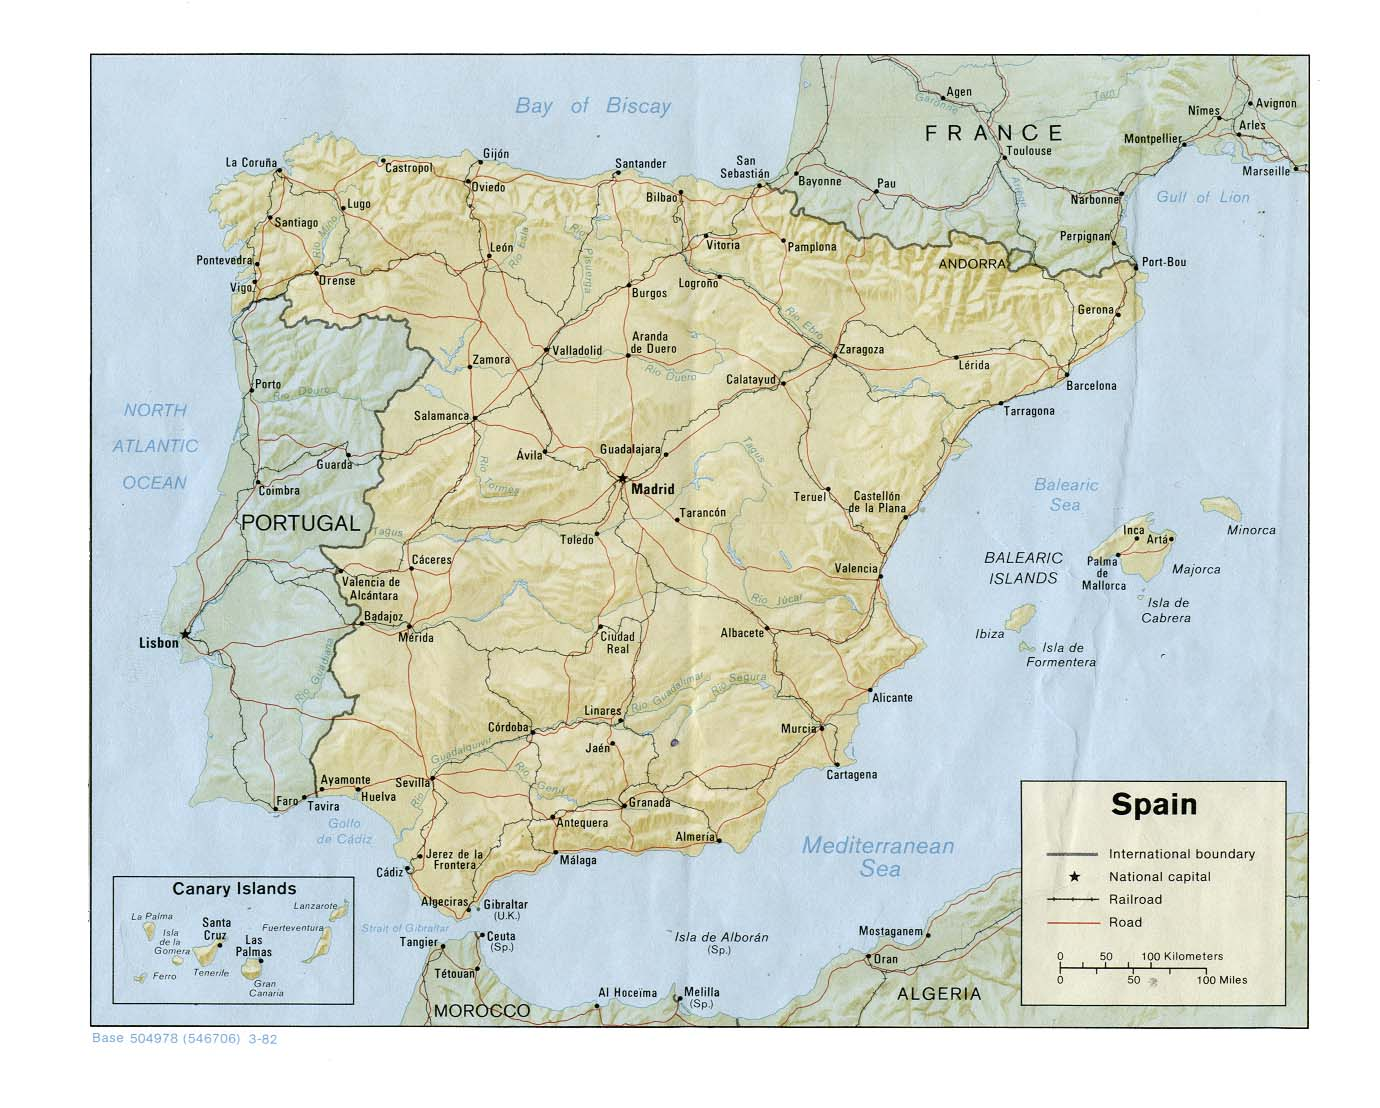 Spain Maps - Perry-Castañeda Map Collection - UT Liry Online on map of maspalomas spain, map of porto spain, map of torrejon spain, map of la manga spain, map of spain major cities, map of santander spain, map of toledo spain, map of irun spain, map of rioja region spain, map of ciudad real spain, map of palamos spain, map of santillana spain, map of priorat spain, map of gava spain, map of ribera del duero spain, map of cadiz spain, map of nerja spain, map of sanlucar spain, large map of spain, map of spain with regions,